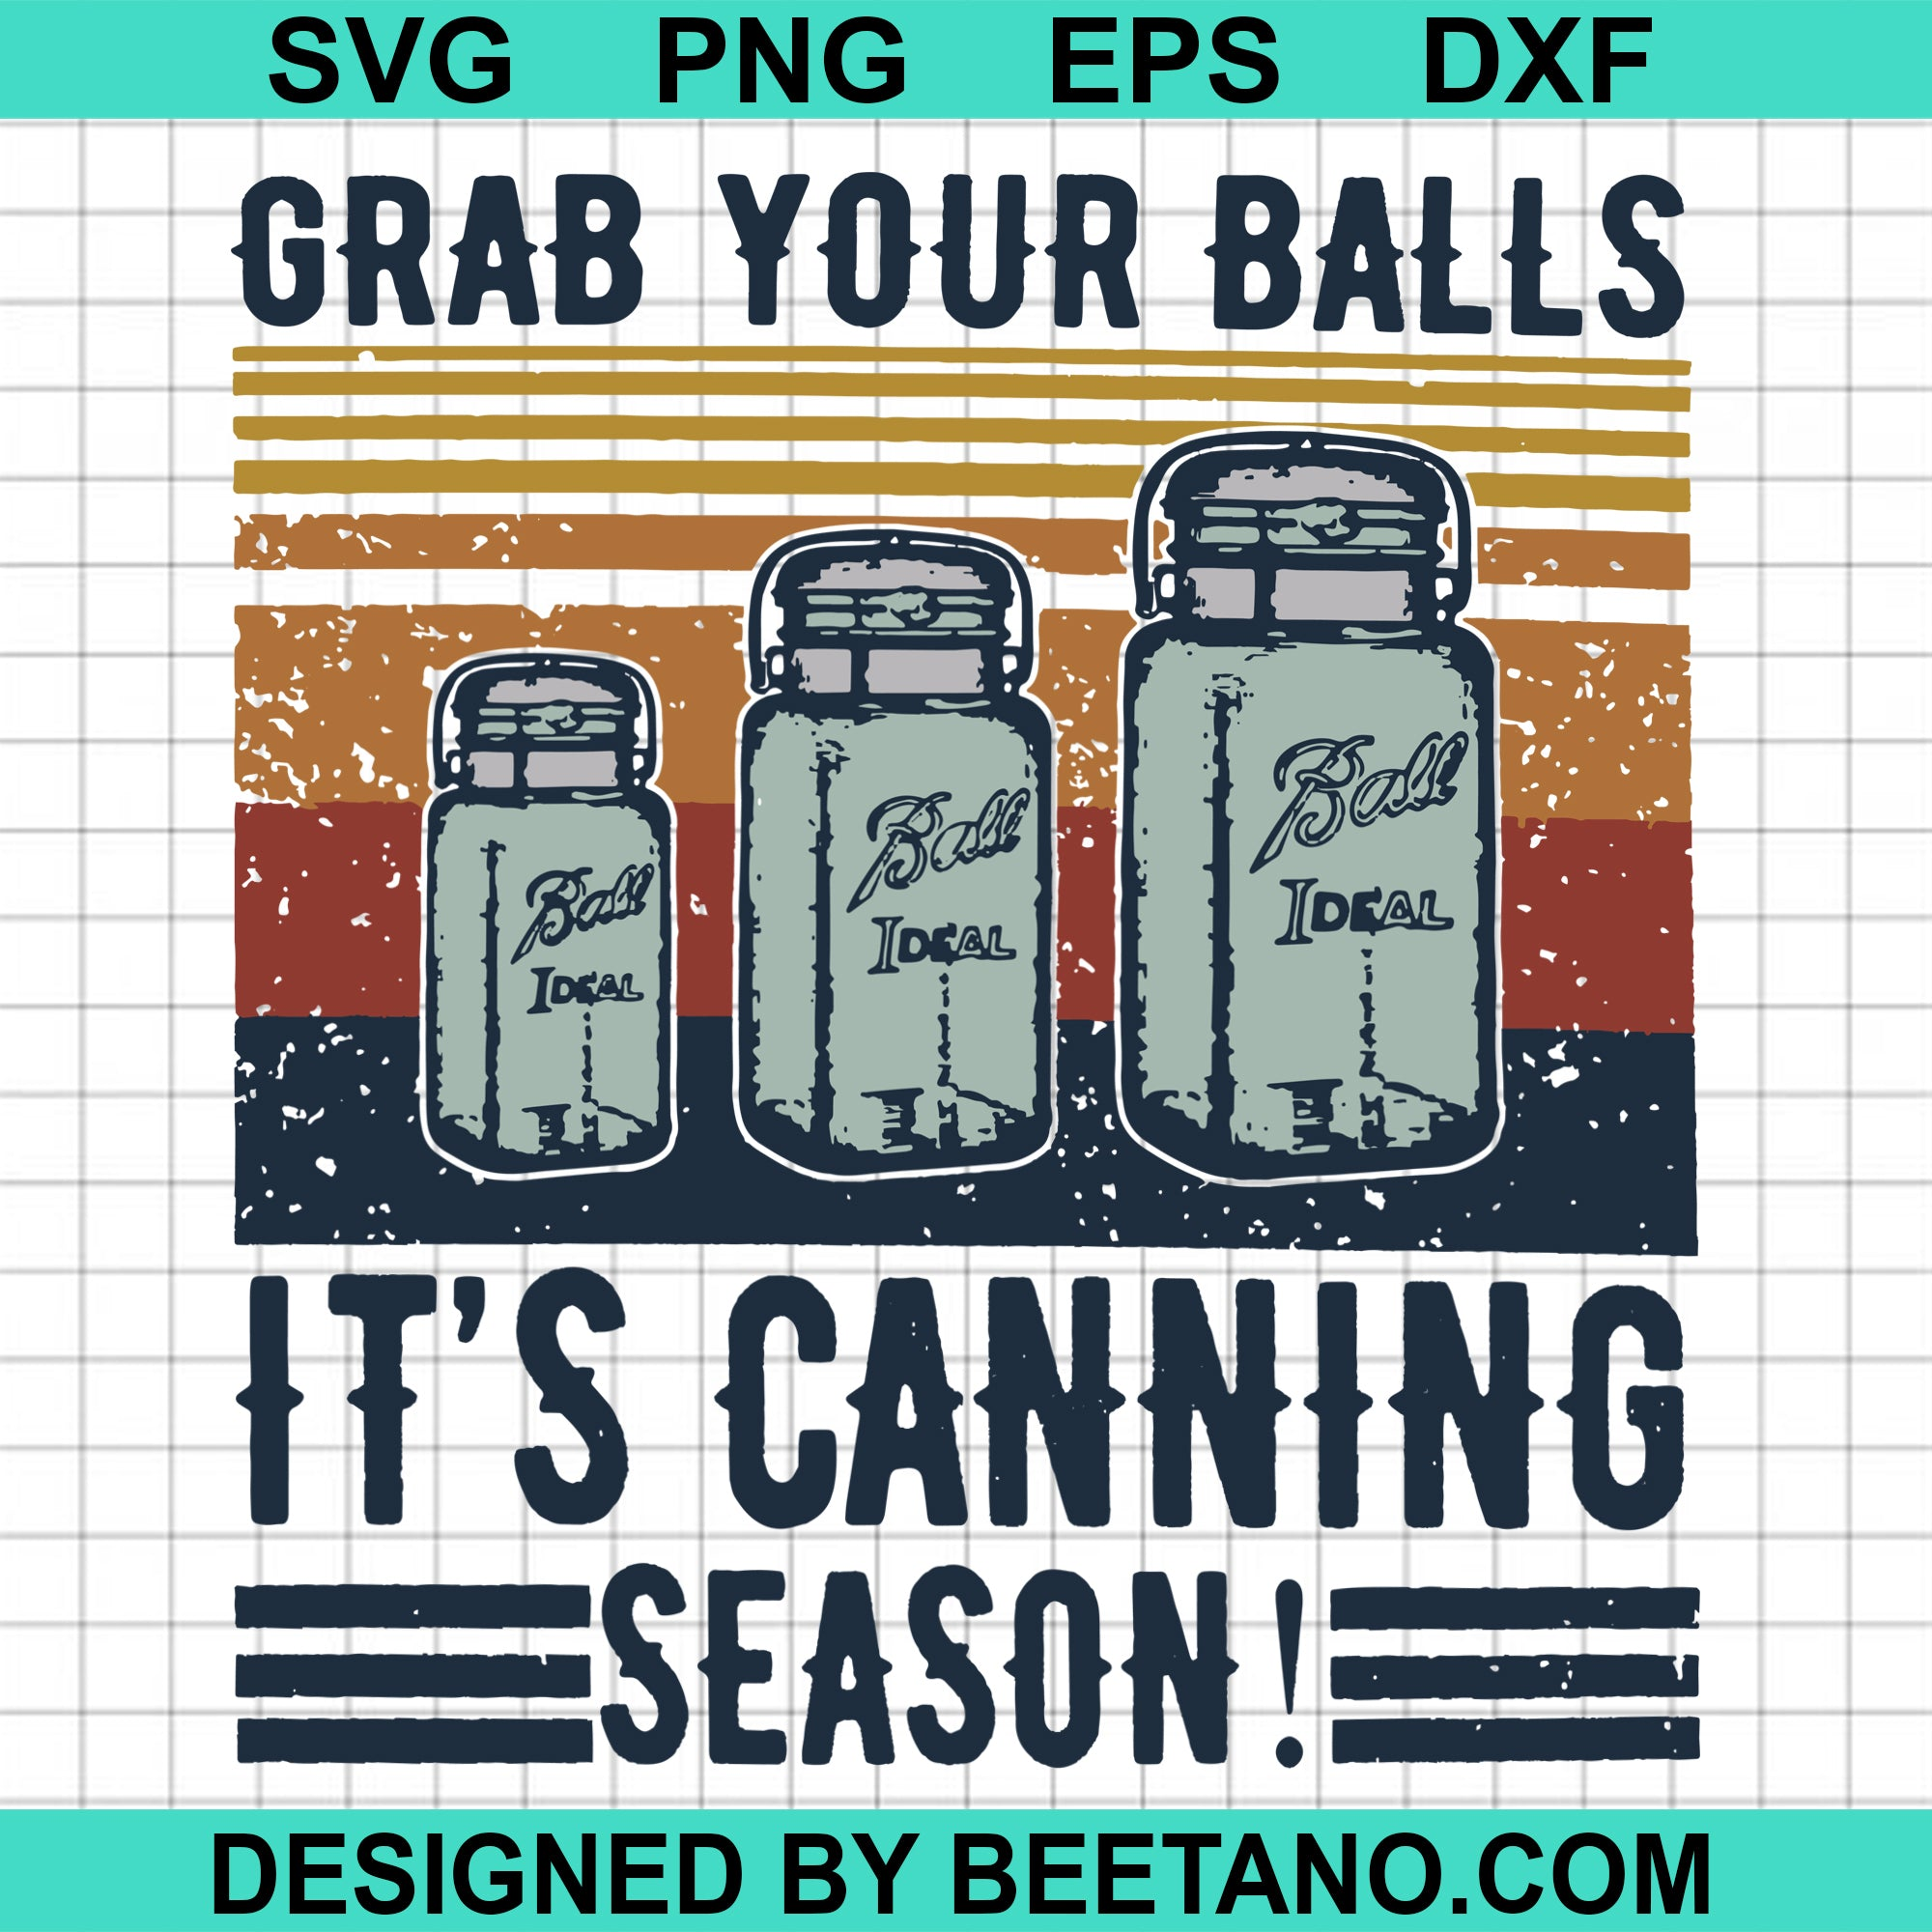 Grab your ball it's canning season